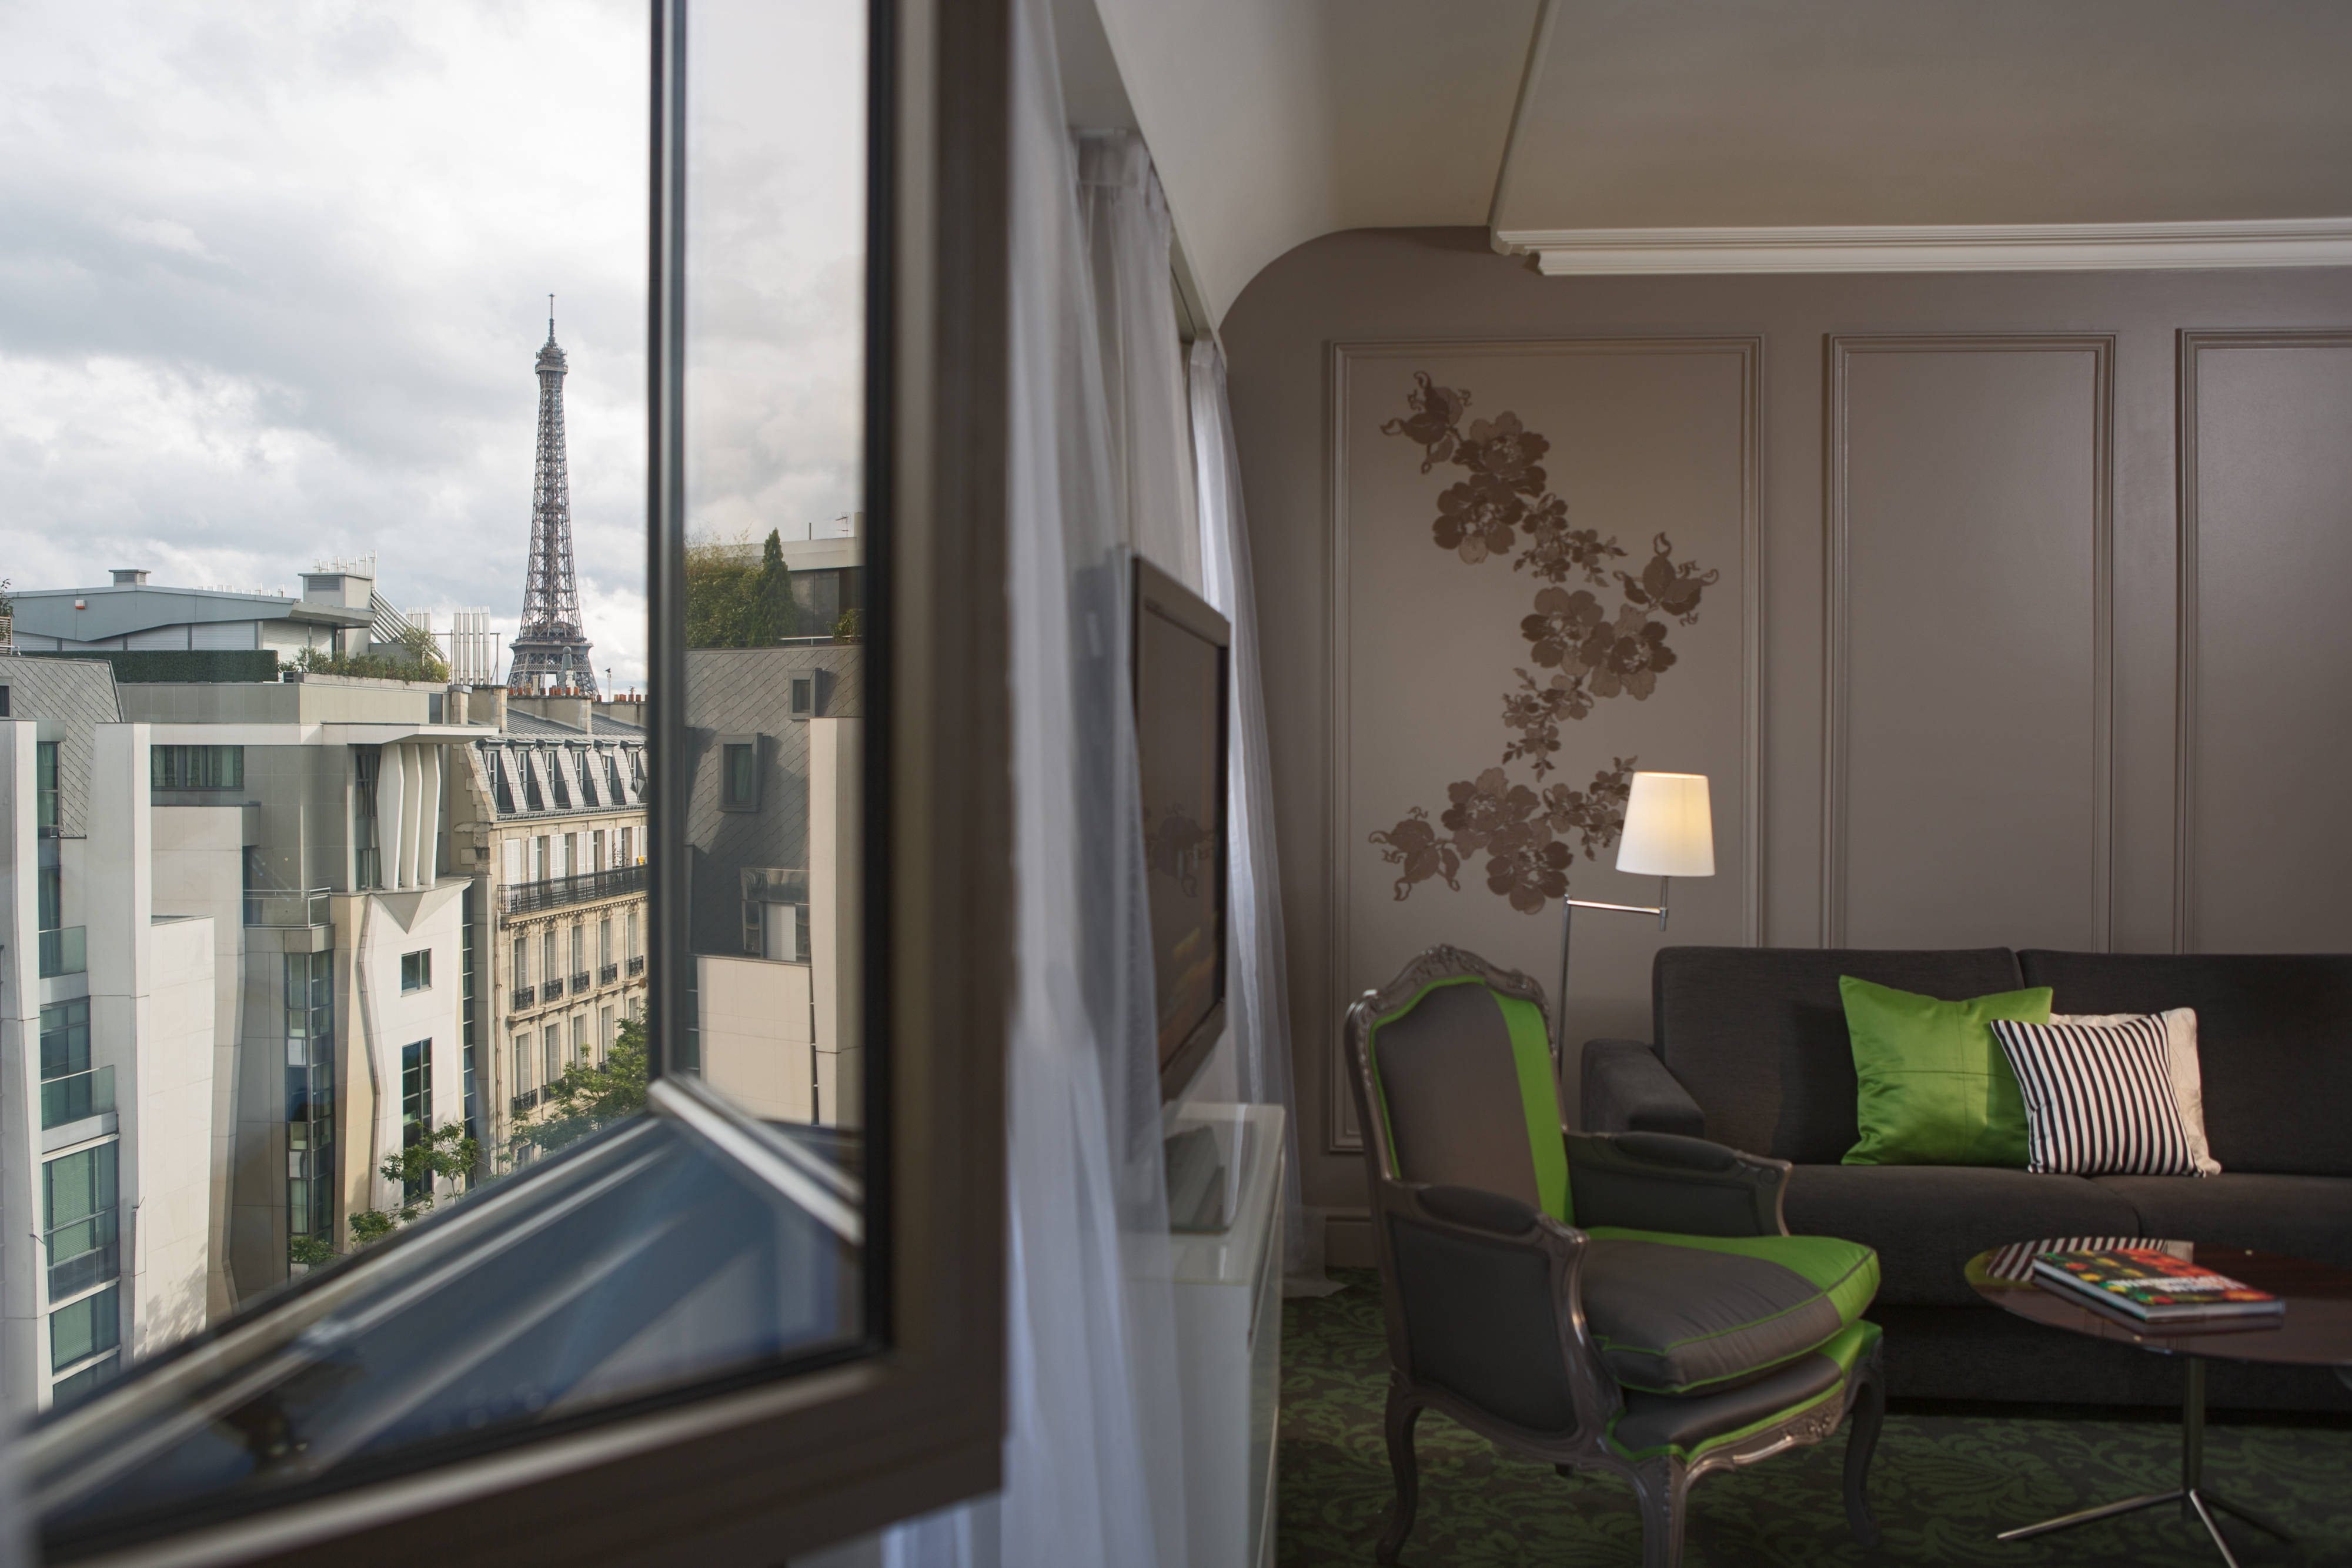 Paris family hotel near eiffel tower renaissance paris for Hotels around eiffel tower